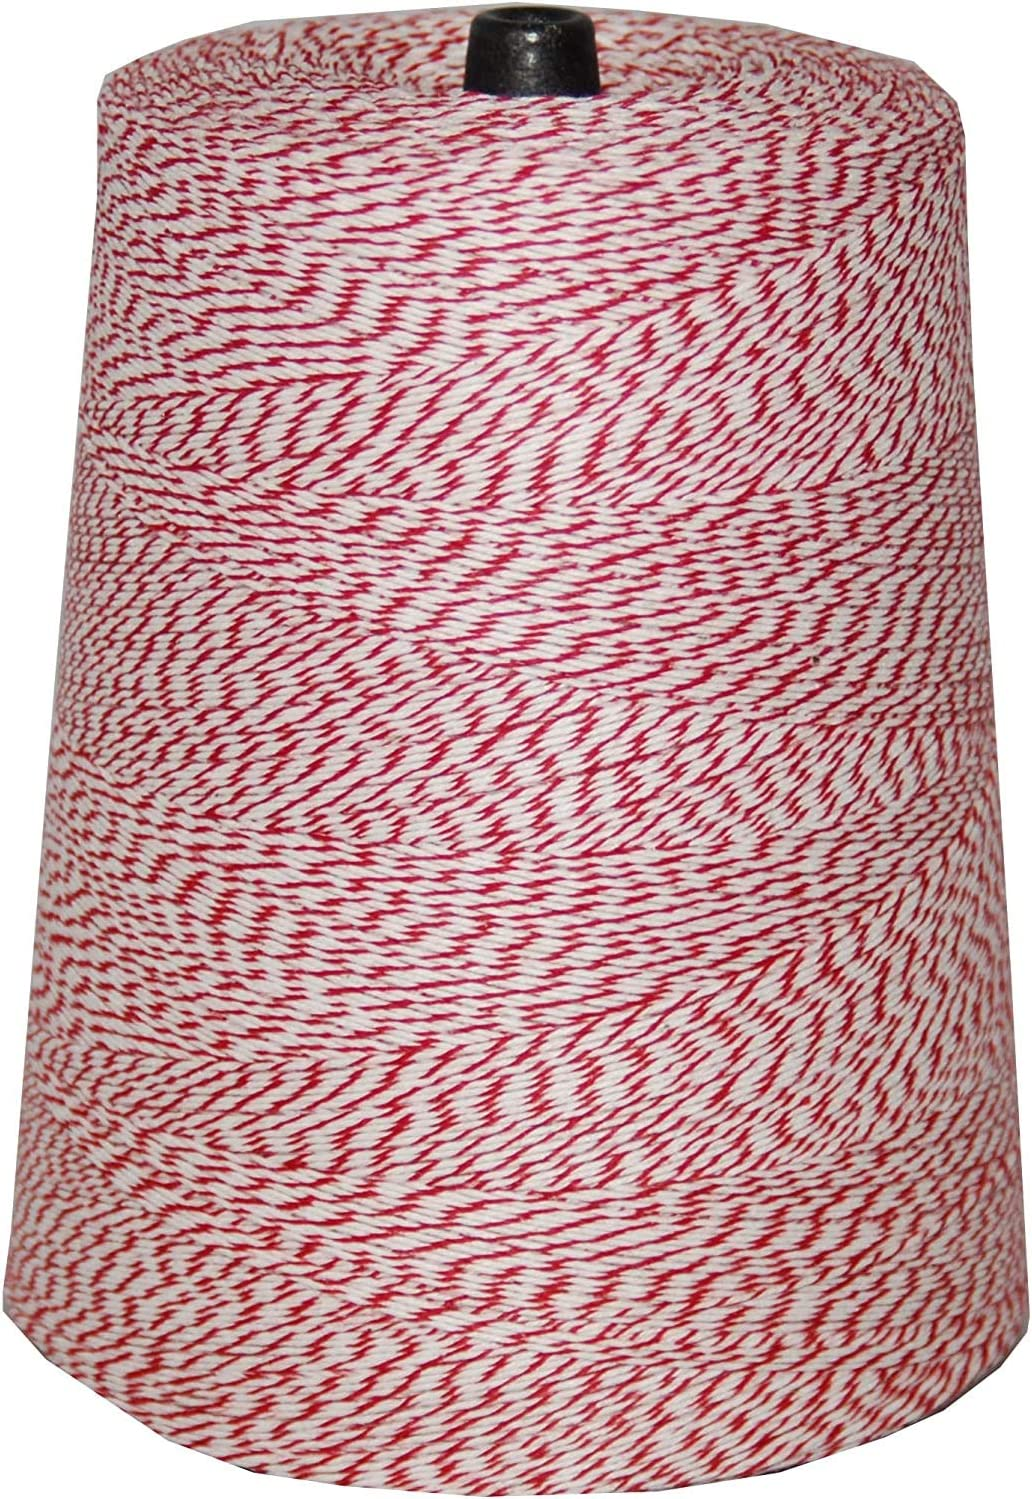 Great White Bakery Twine, Red & White 4-PLY Tying Cake & Pastry Boxes, Baking, Decoration, DIY, Arts and Crafts, Bakers Twine, String, 2lb. cone, 9,600ft., Durable, Variegated, Food Grade, Made in USA